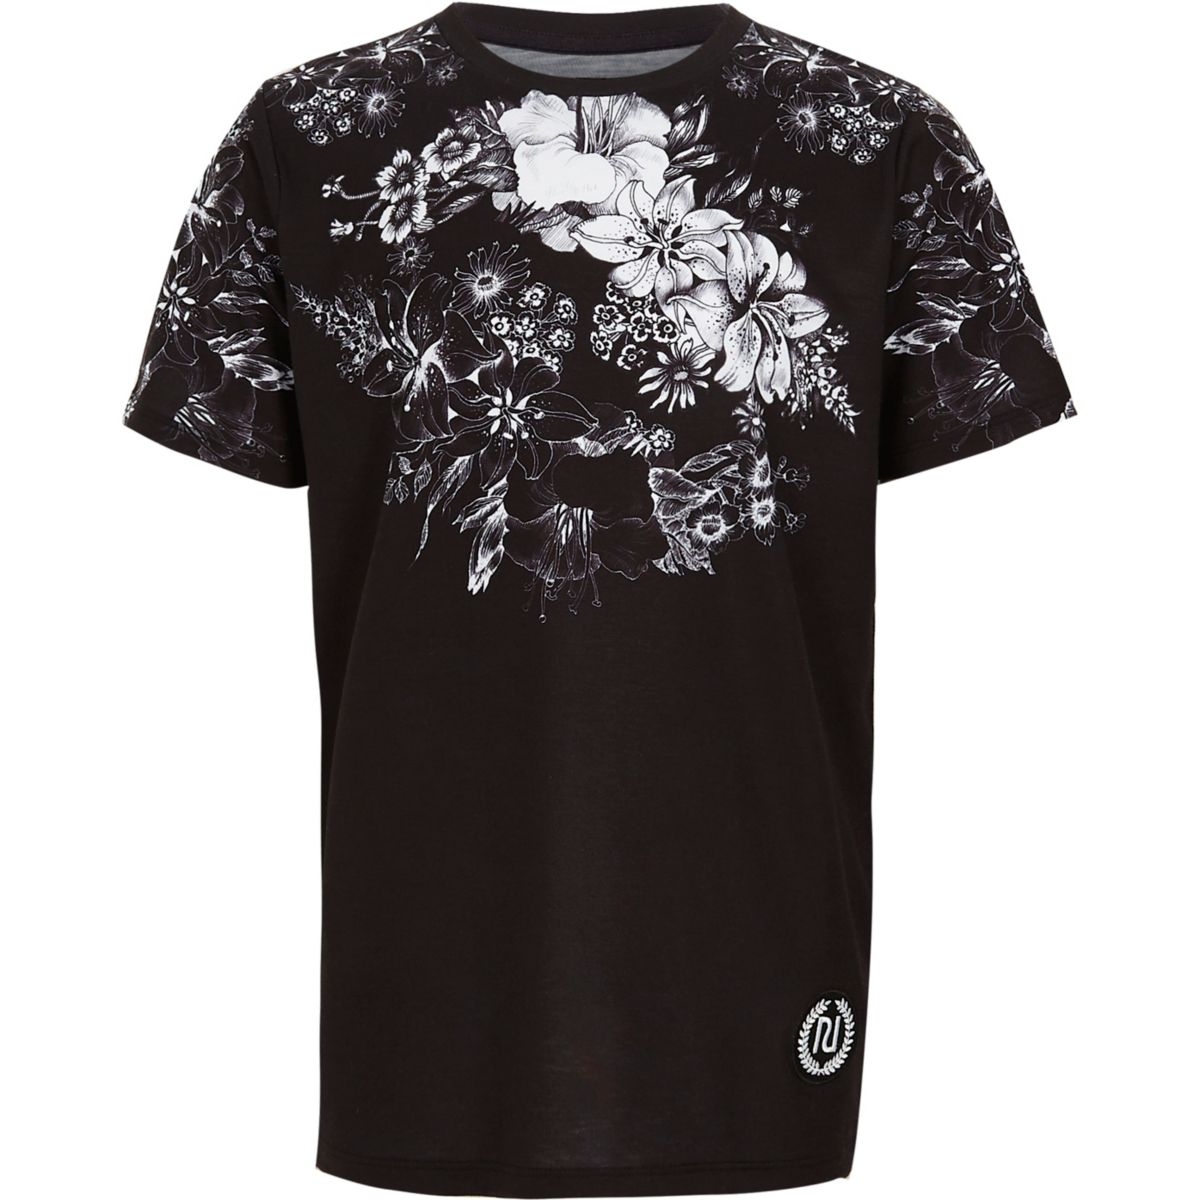 Boys black floral print t shirt t shirts t shirts for Black floral print shirt